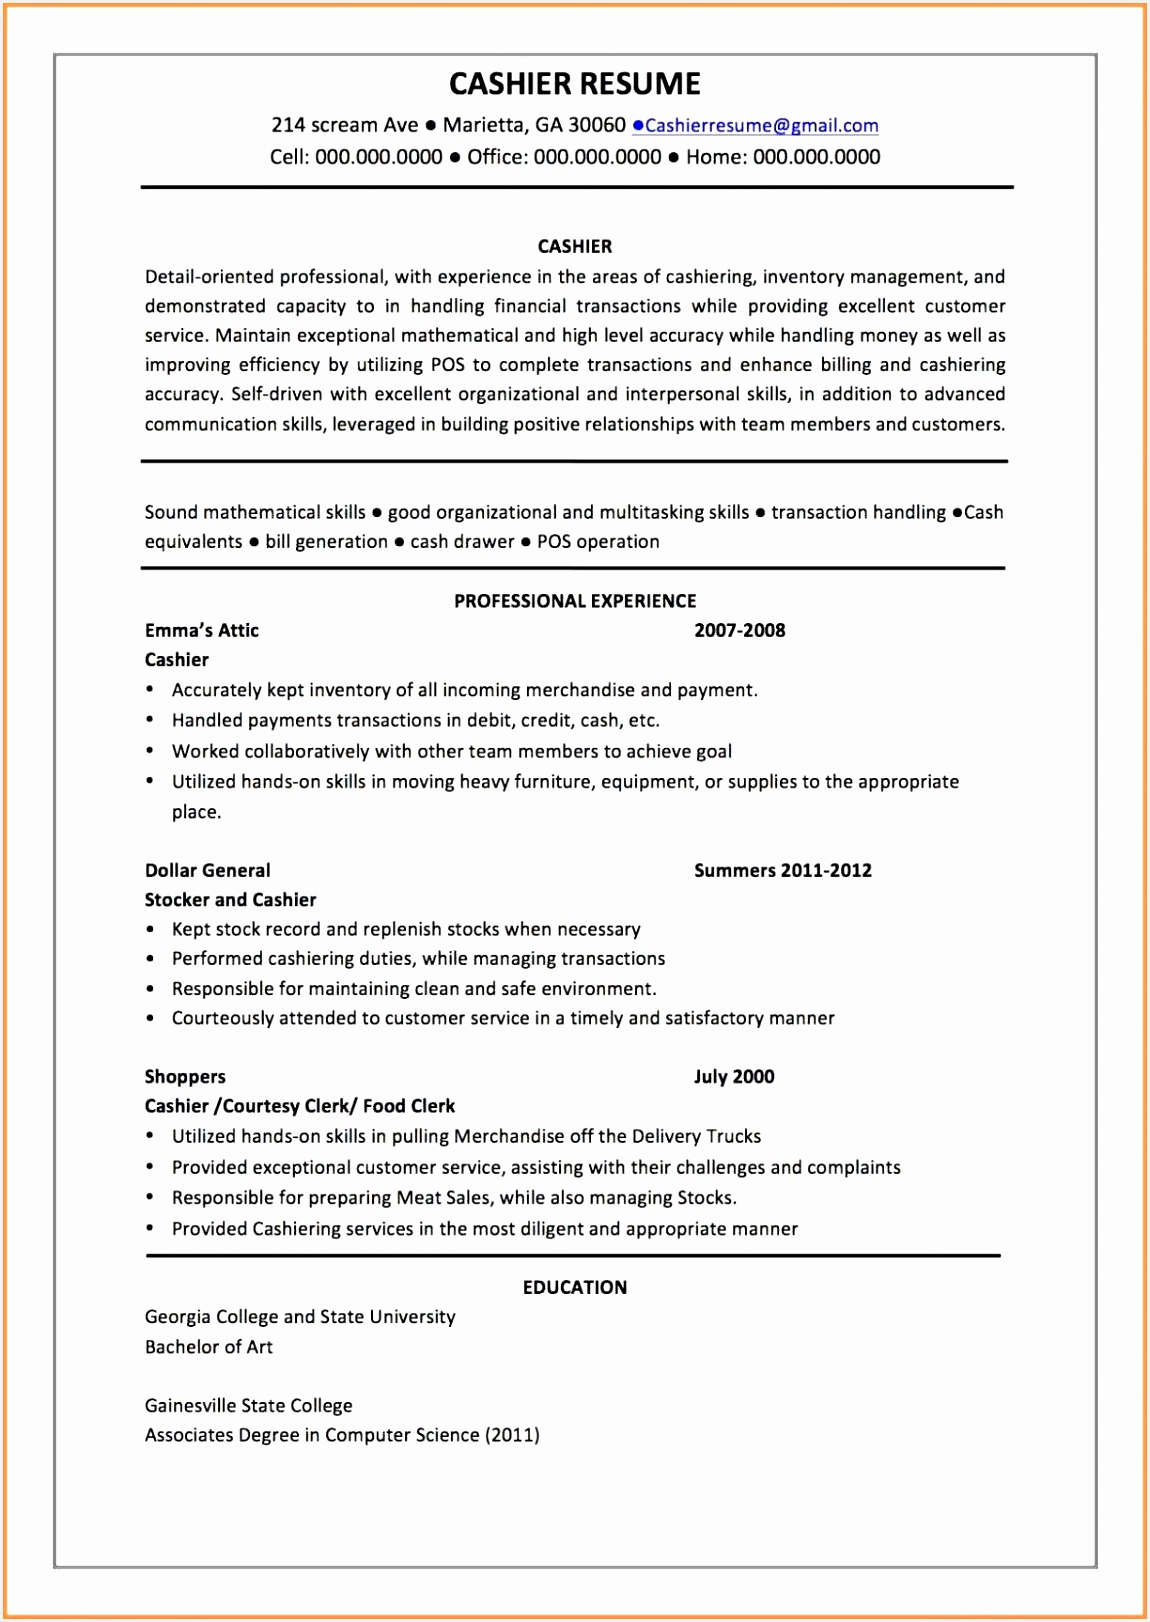 Records Management Resume Vhunr Inspirational Letter Example Plaint New How to Write Skills In Resume Luxury Of 7 Records Management Resume